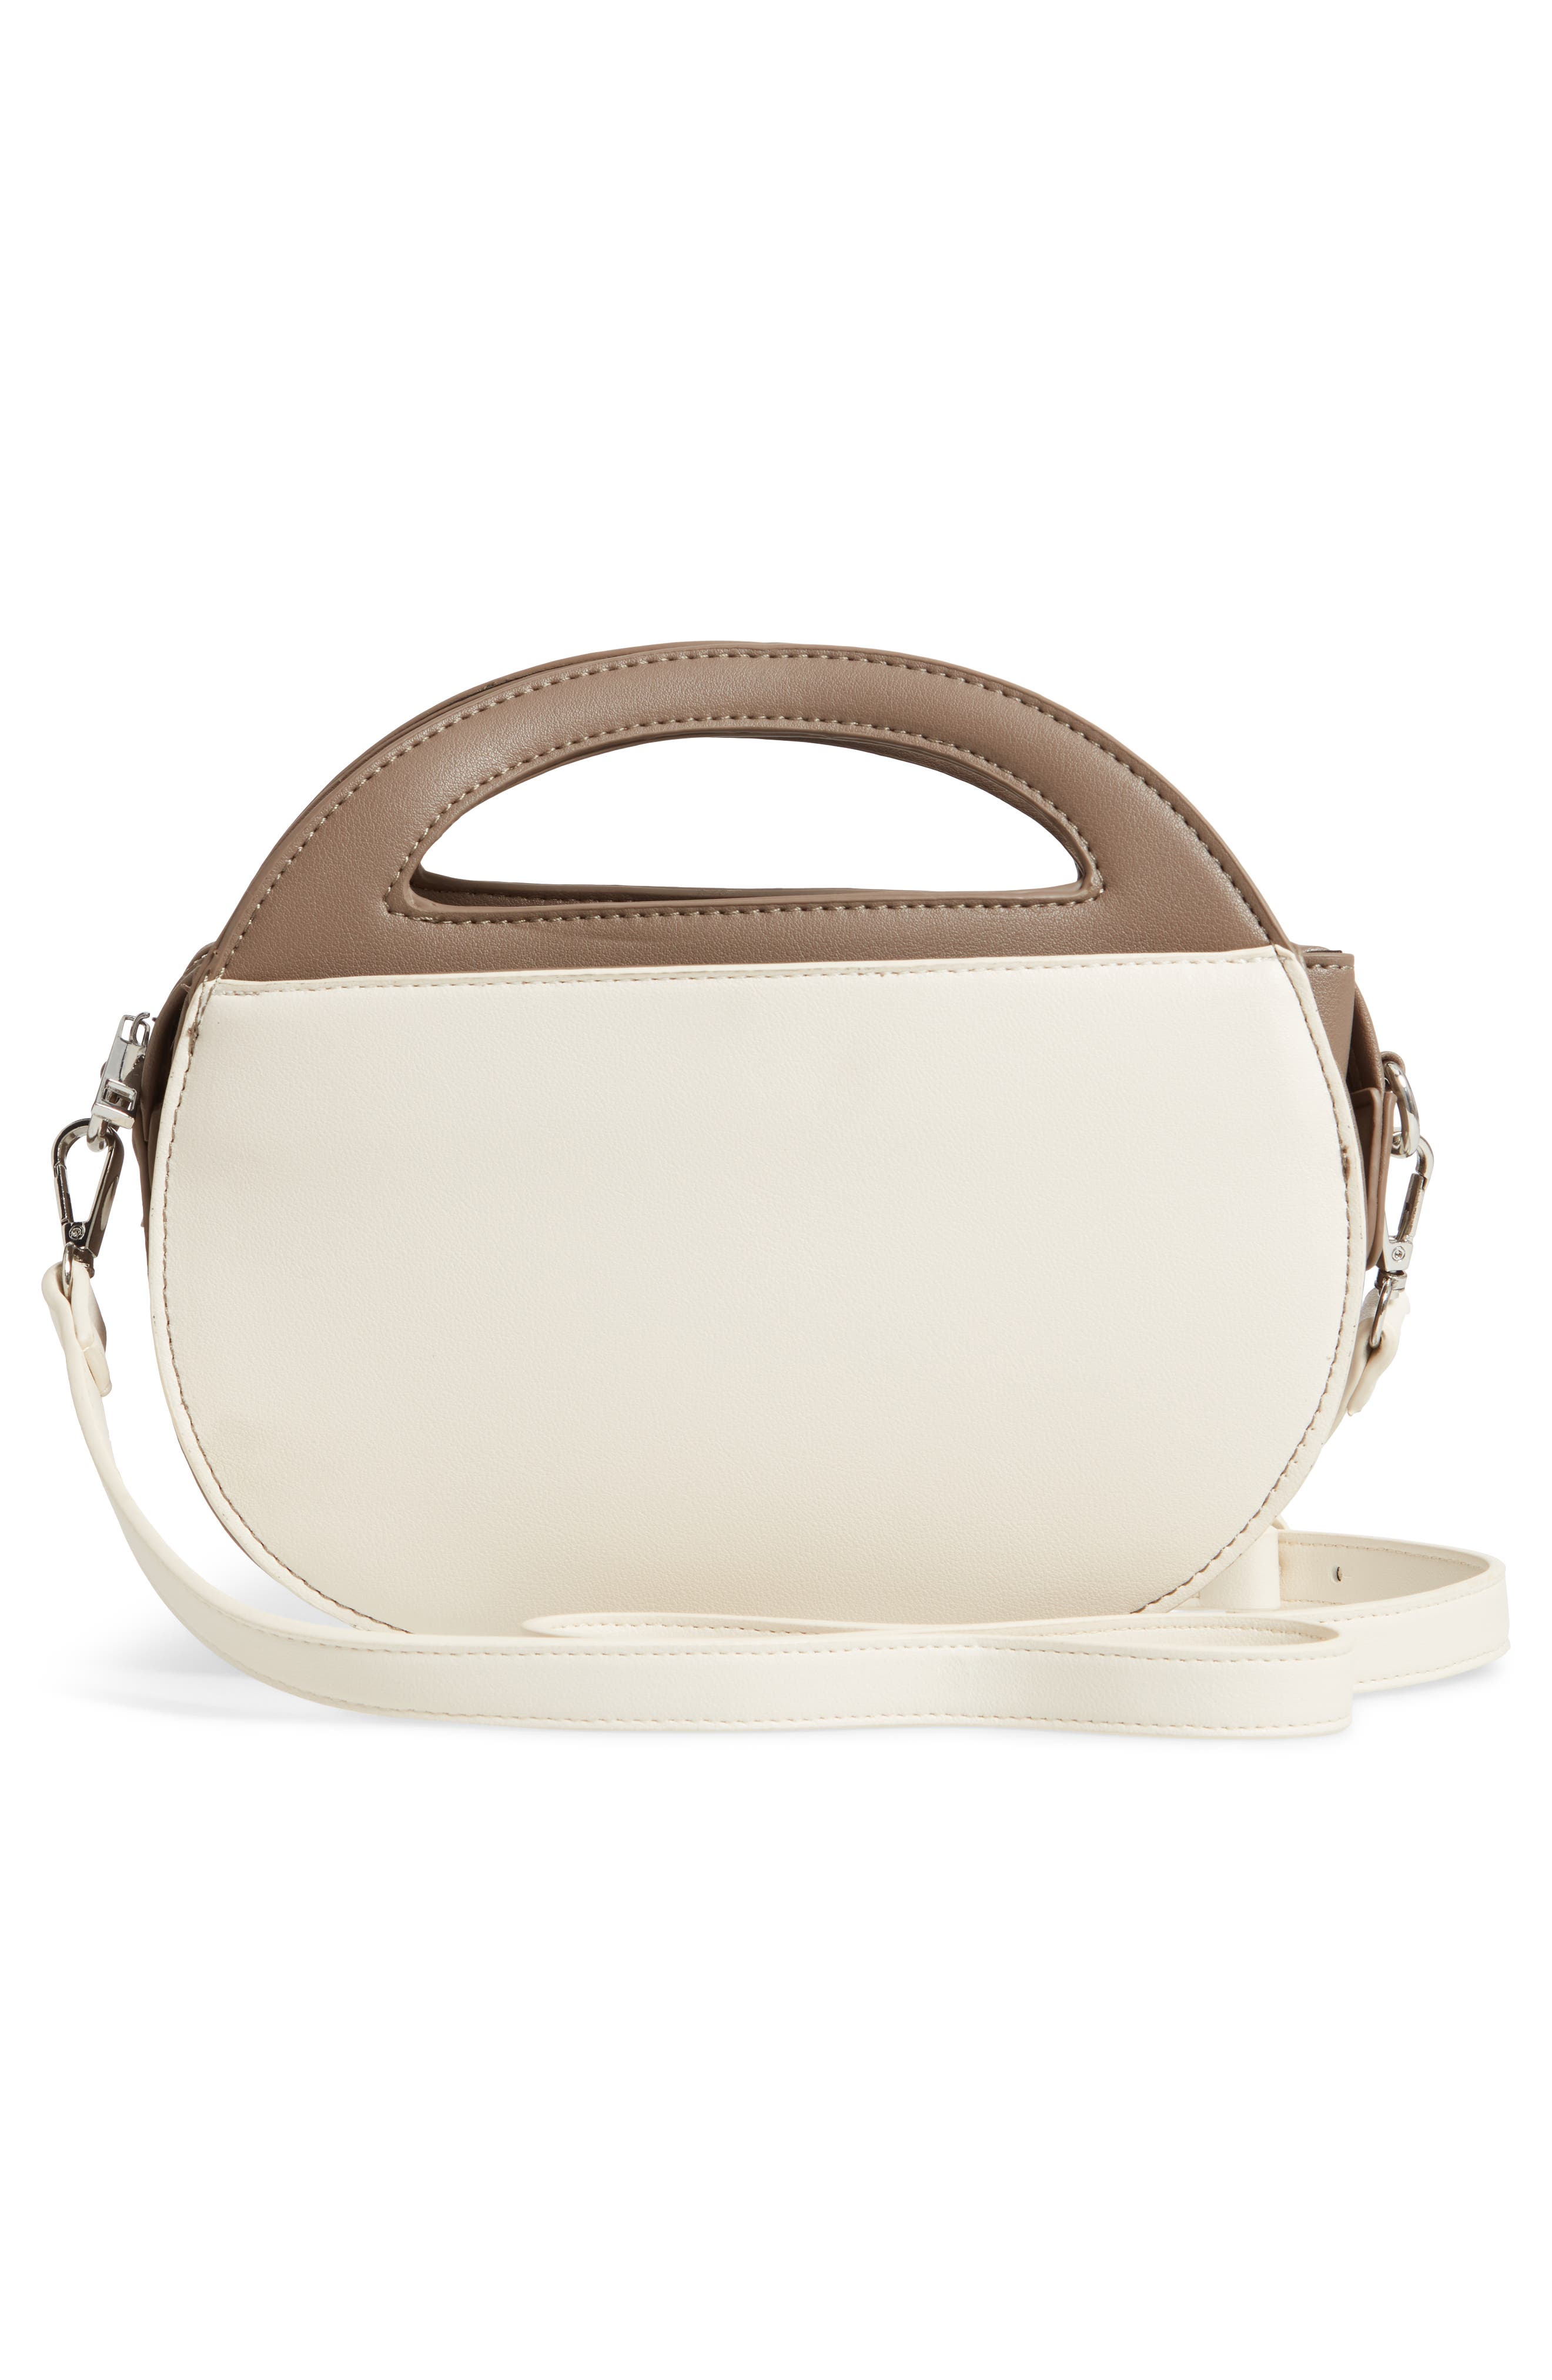 Two-Tone Faux Leather Oval Crossbody Bag,                             Alternate thumbnail 3, color,                             TAUPE/ COGNAC